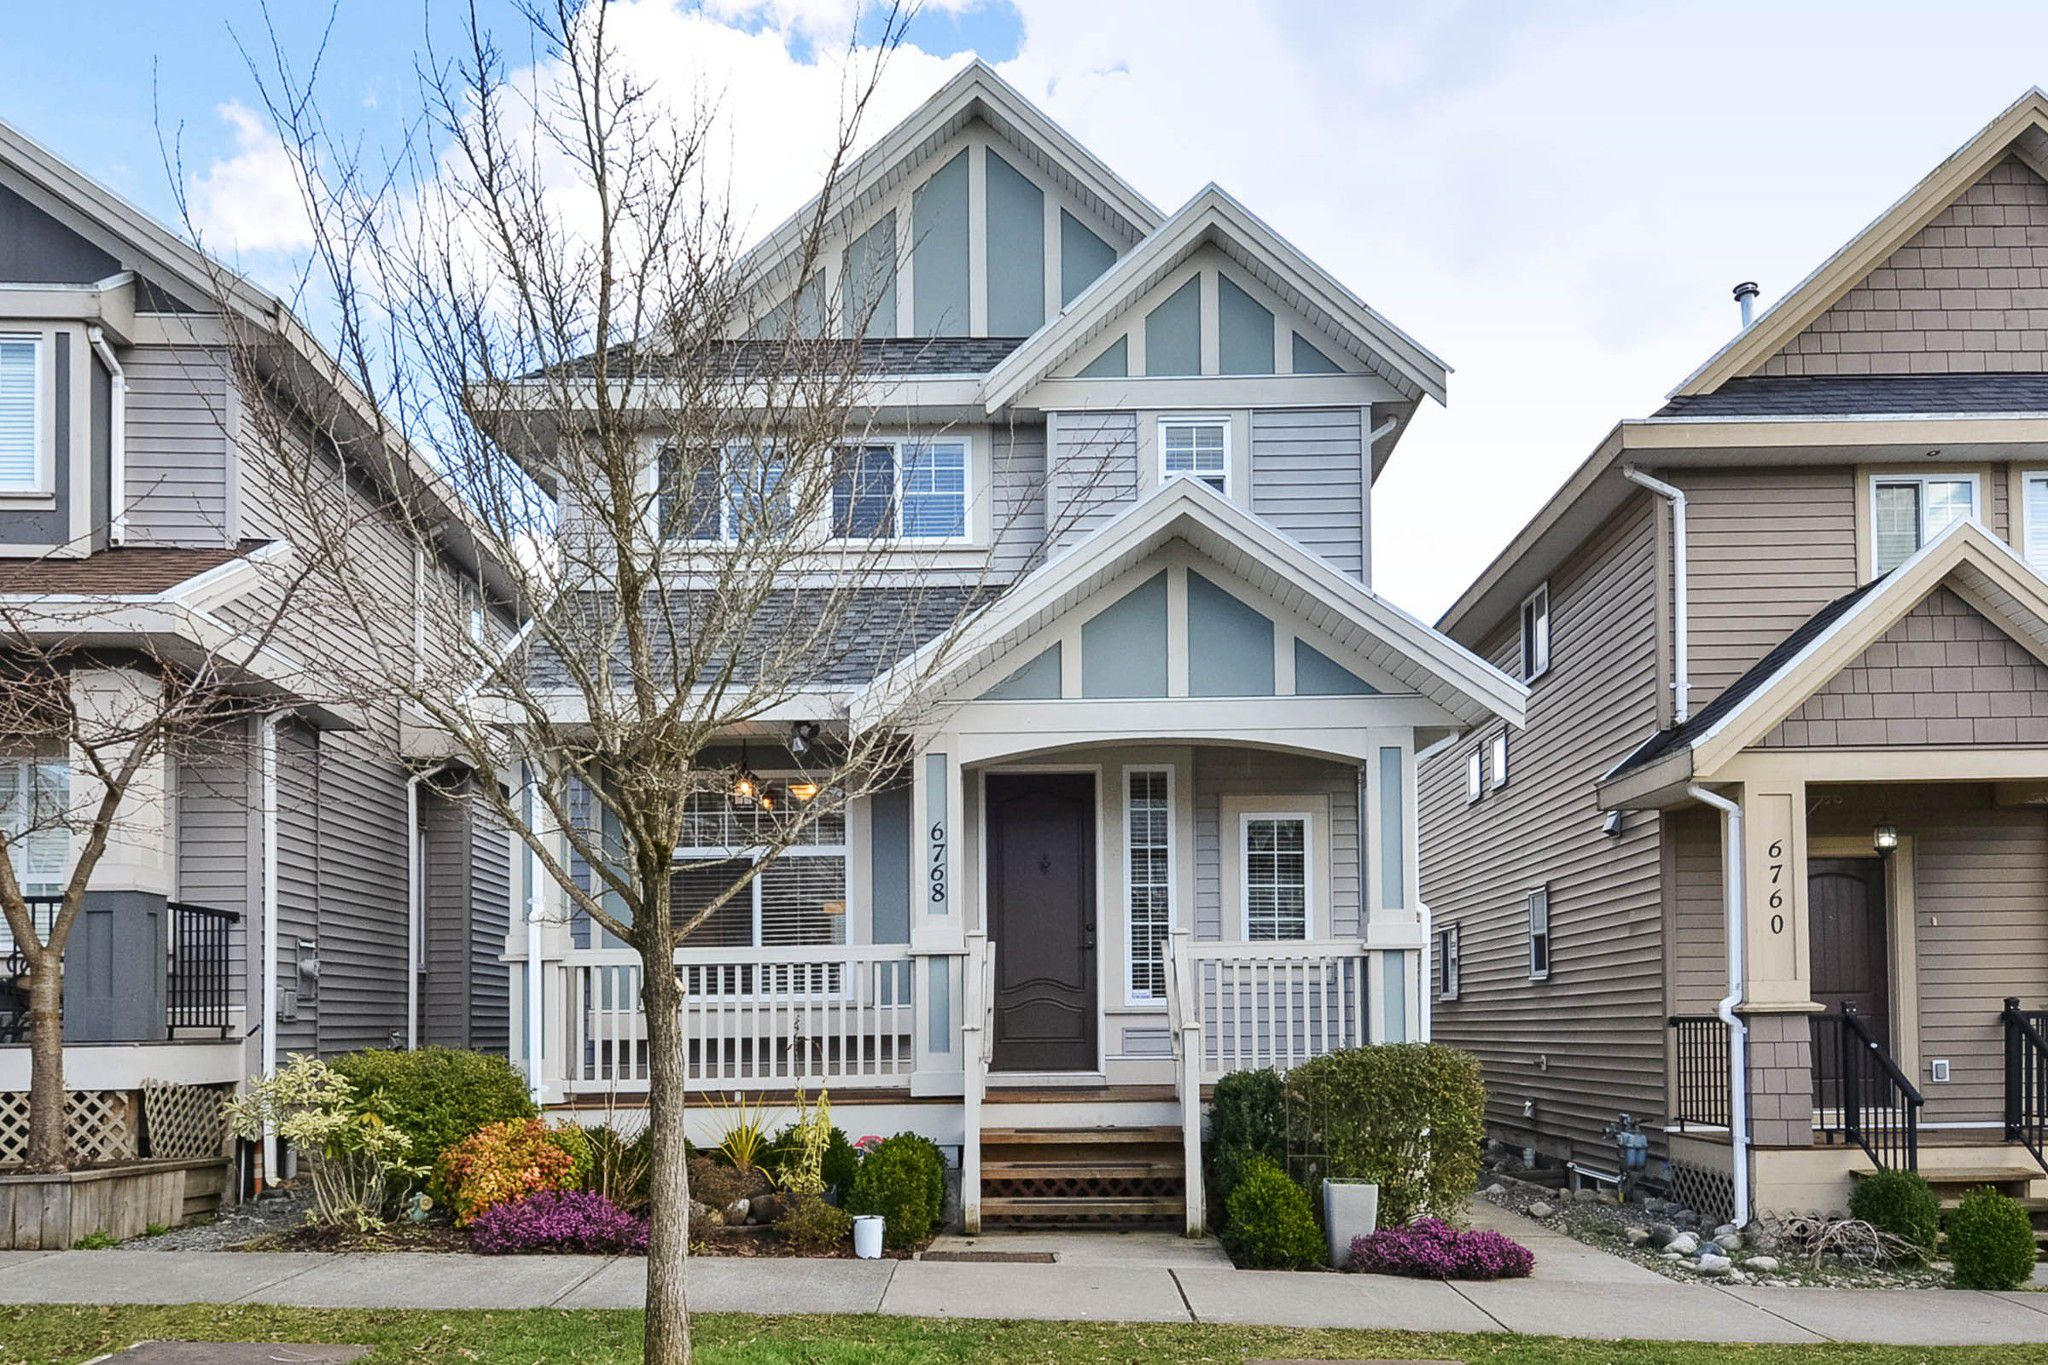 Main Photo: 6768 191A Street in Surrey: Clayton House for sale (Cloverdale)  : MLS®# R2246245